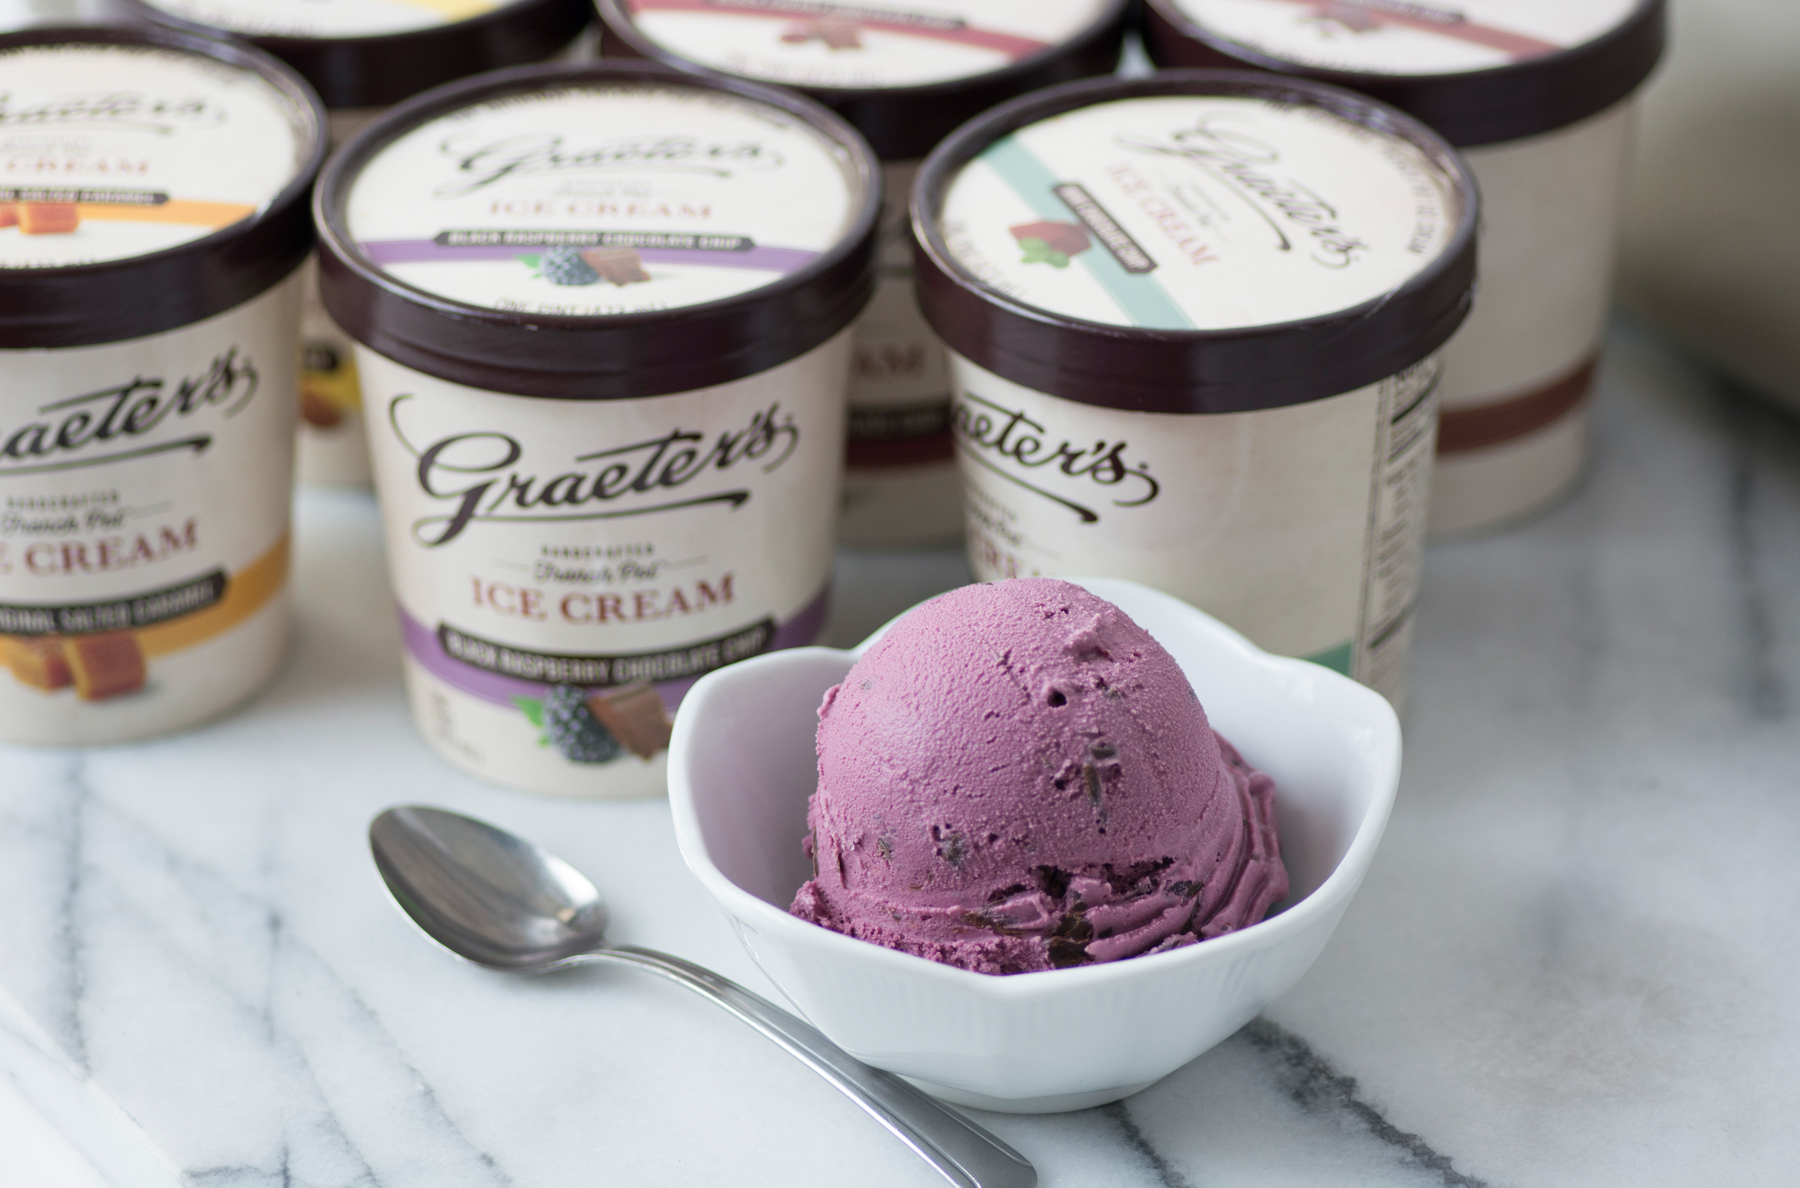 Graeter's Ice Cream Offers The World's Finest Ice Cream Perfect For The Holiday's